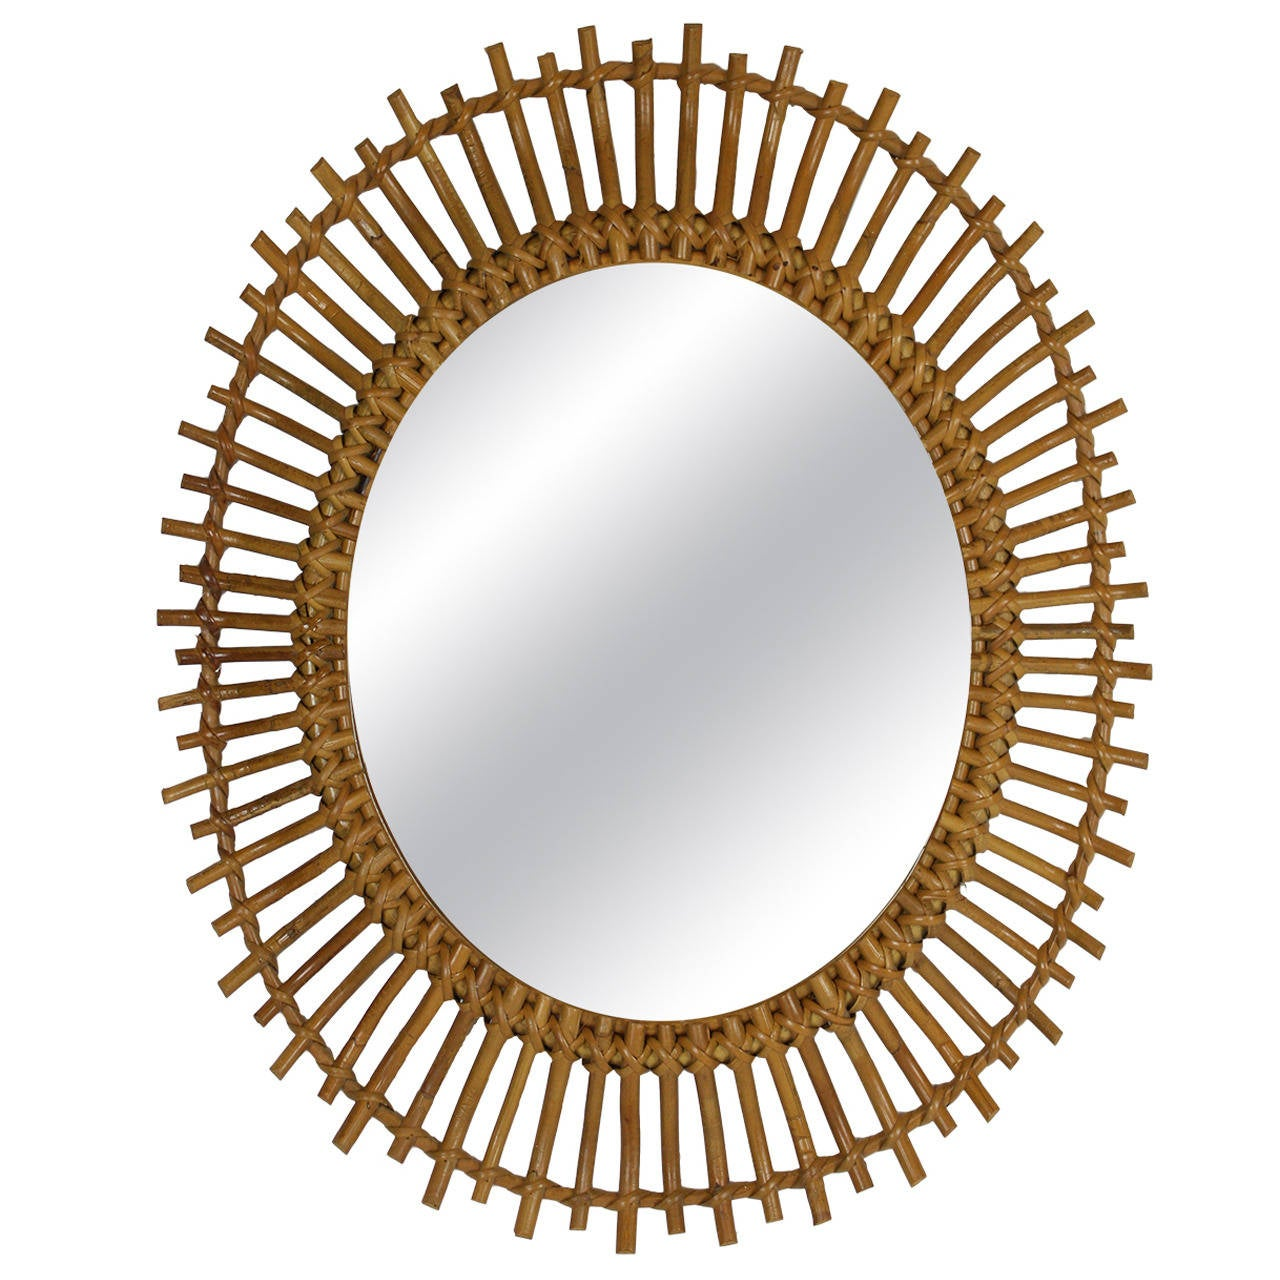 bamboo and rattan sunburst oval mirror at 1stdibs